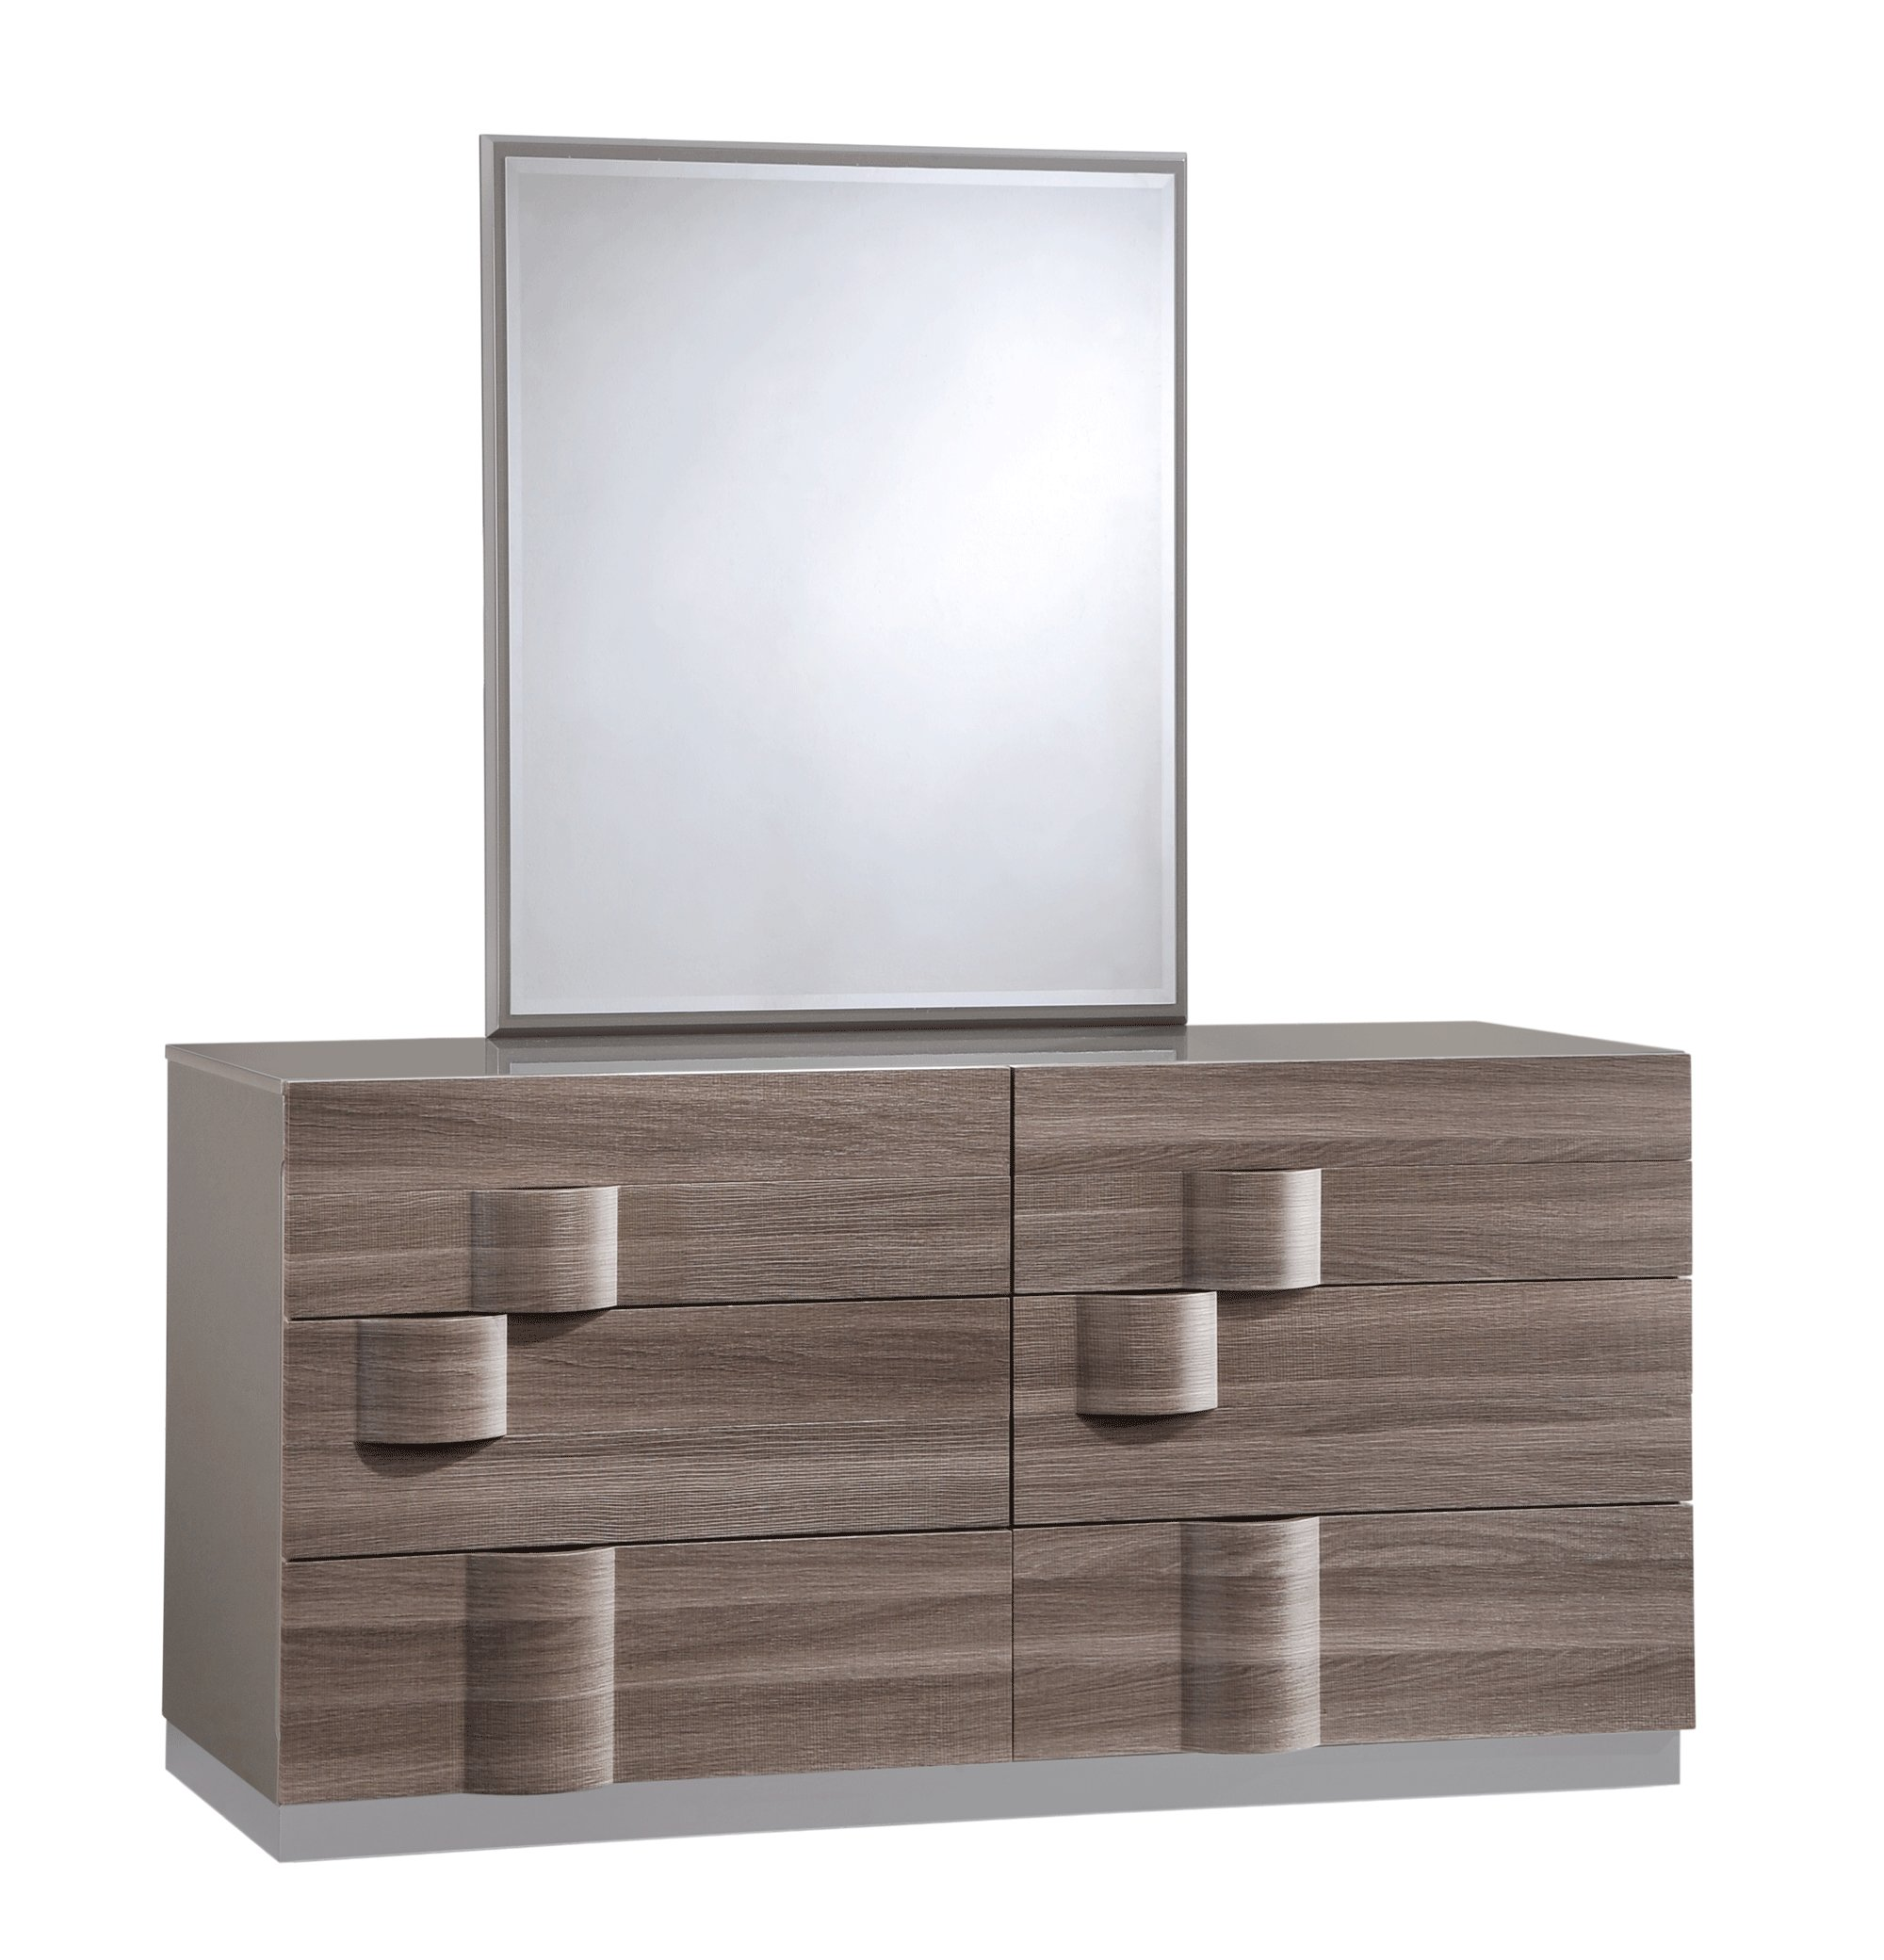 Best Adel Grey Glossy Zebra Wood Bedroom Set By Global Furniture With Pictures